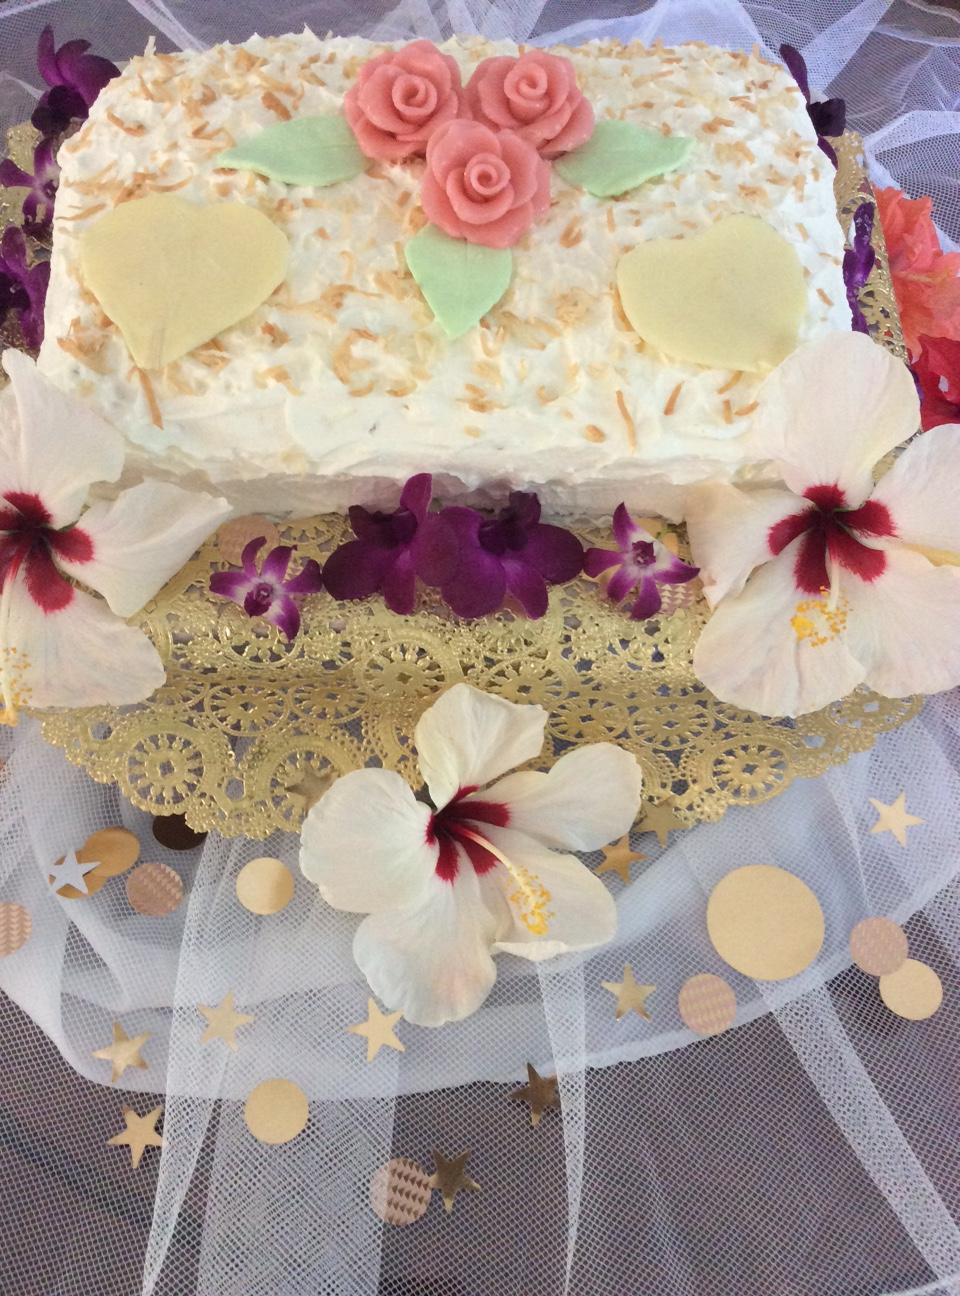 Hawaiian Wedding Cake.Hawaiian Wedding Cake Precious Art By Precious People